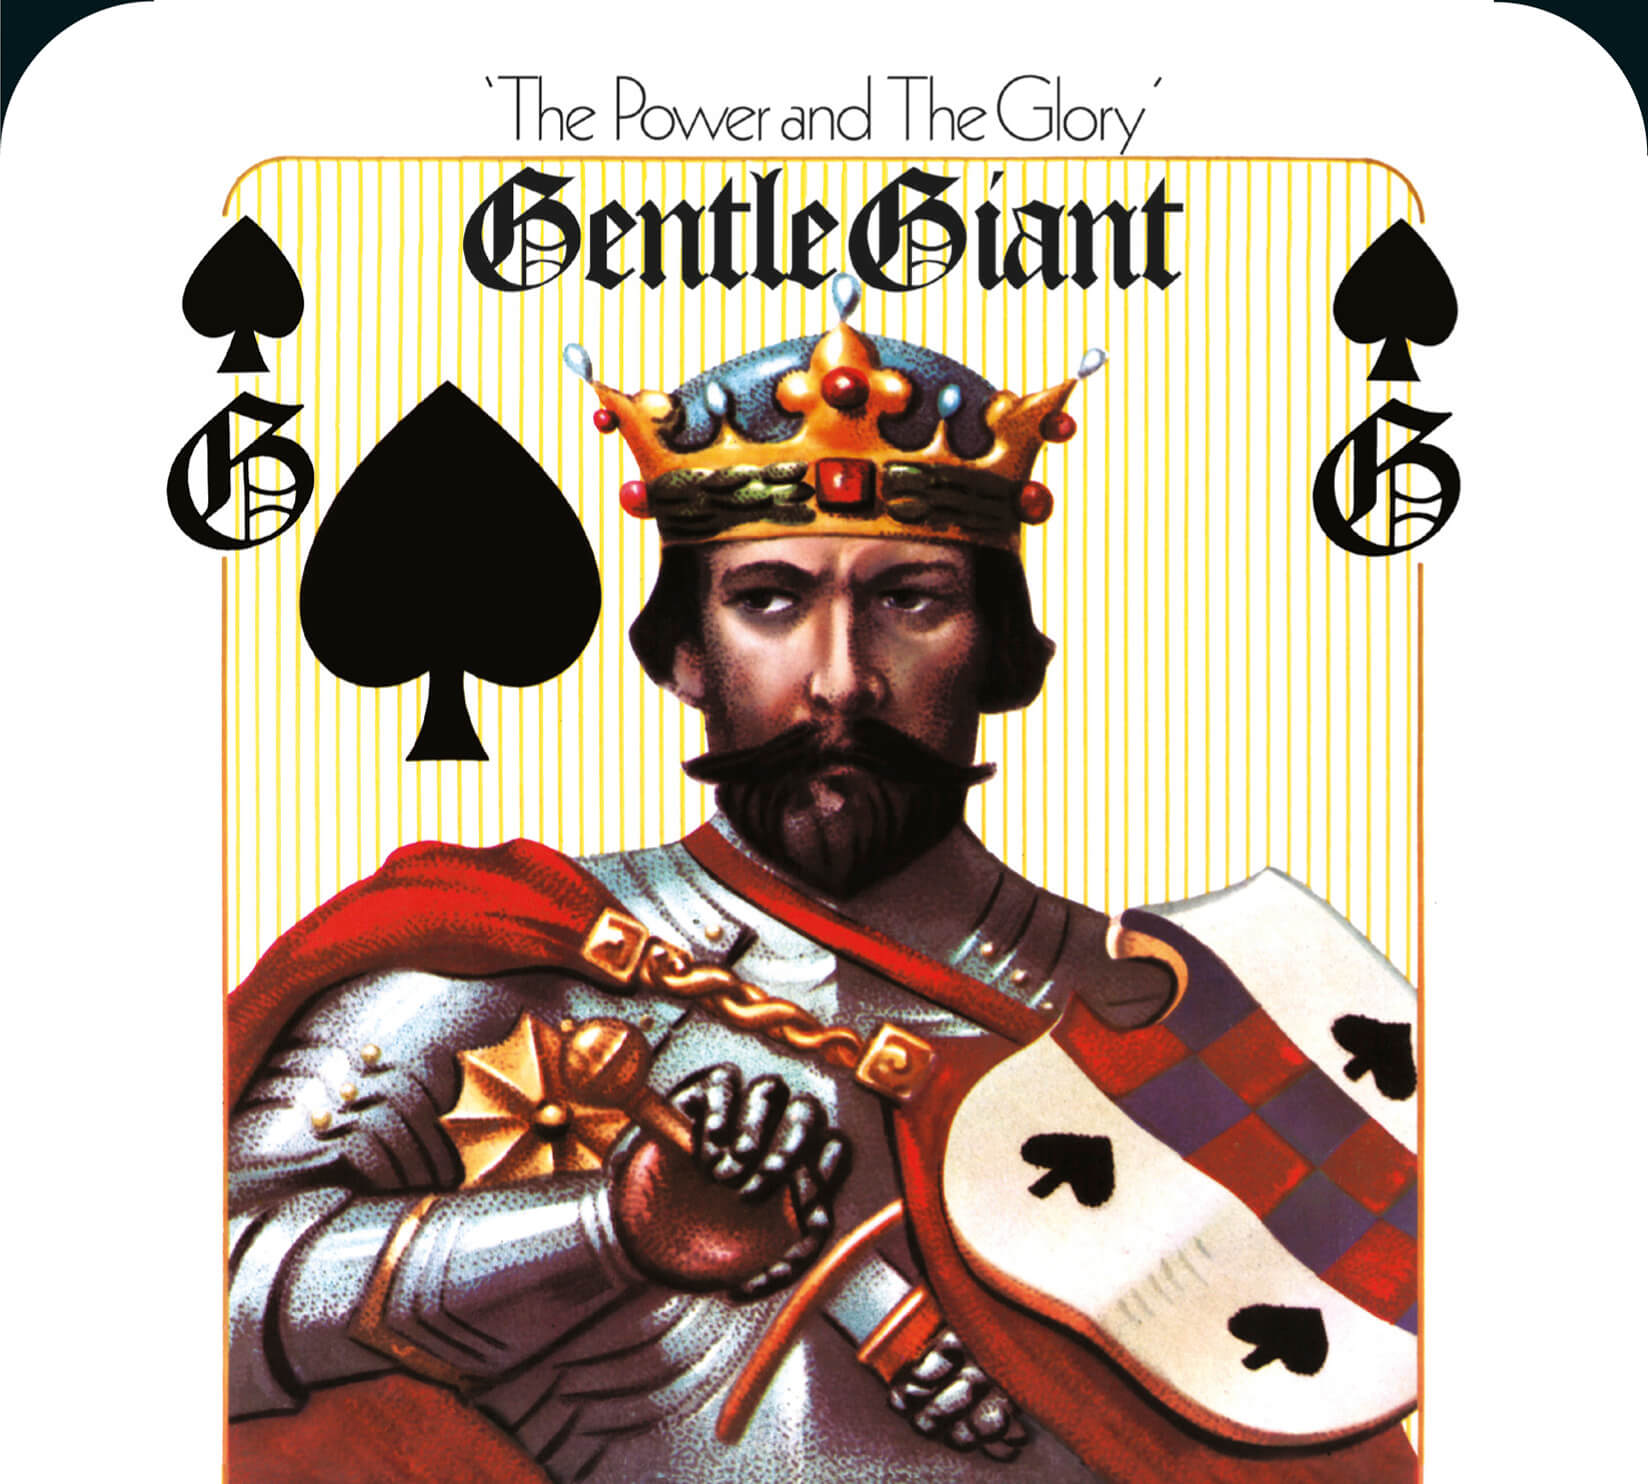 Resultado de imagem para gentle giant 1974 the power and The Glory